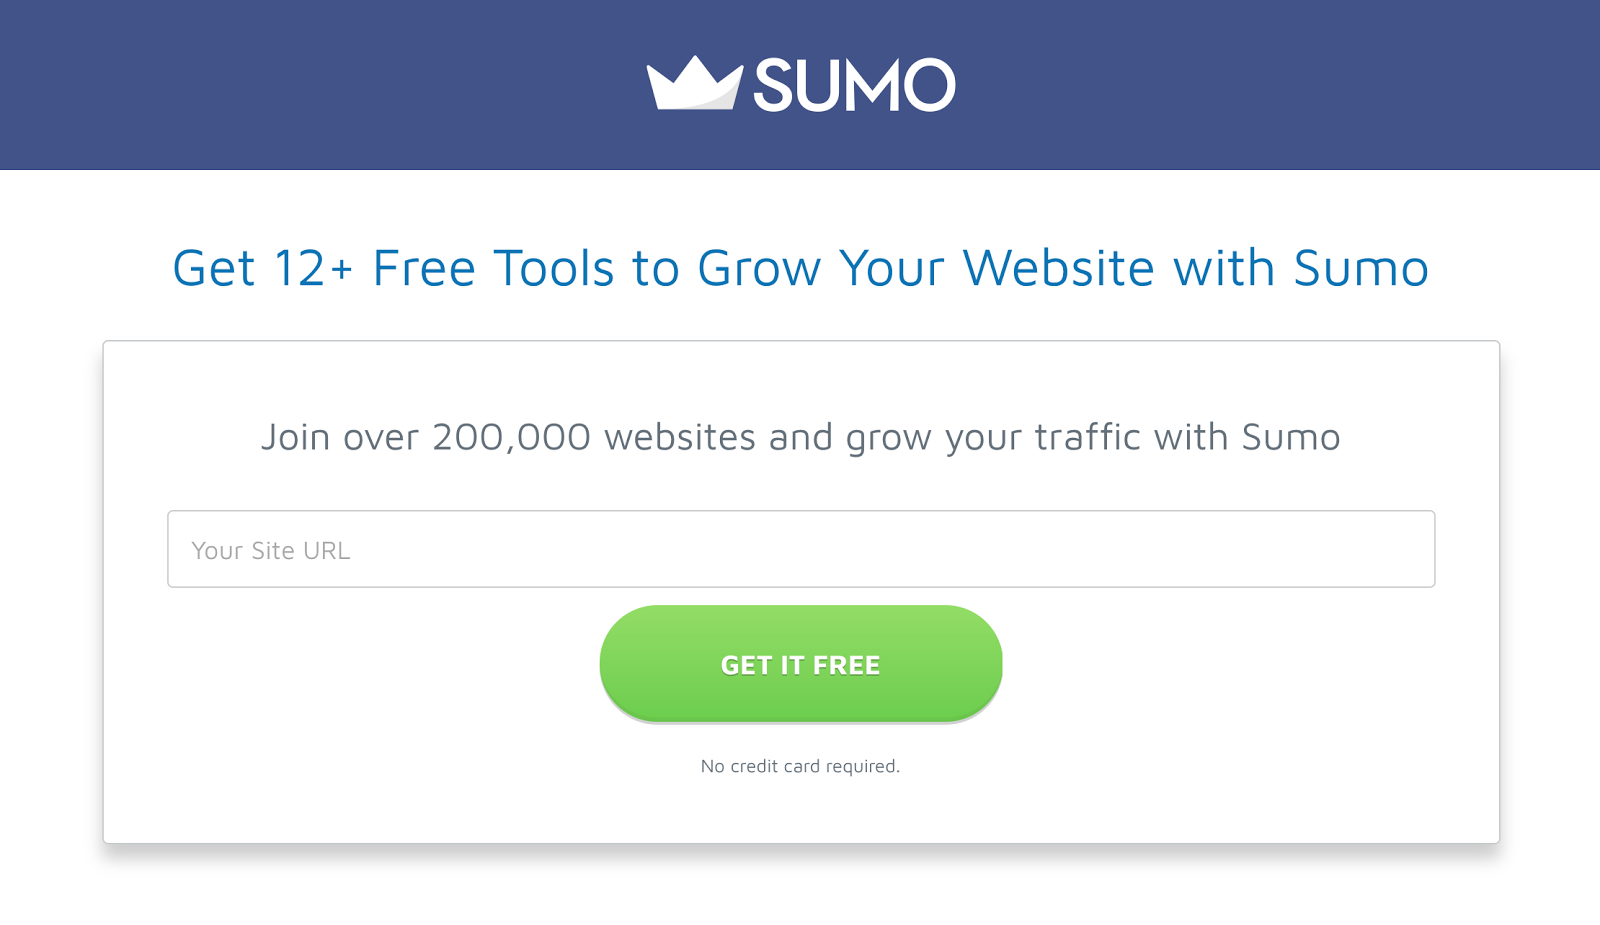 Sumo's landing page is different from the home page